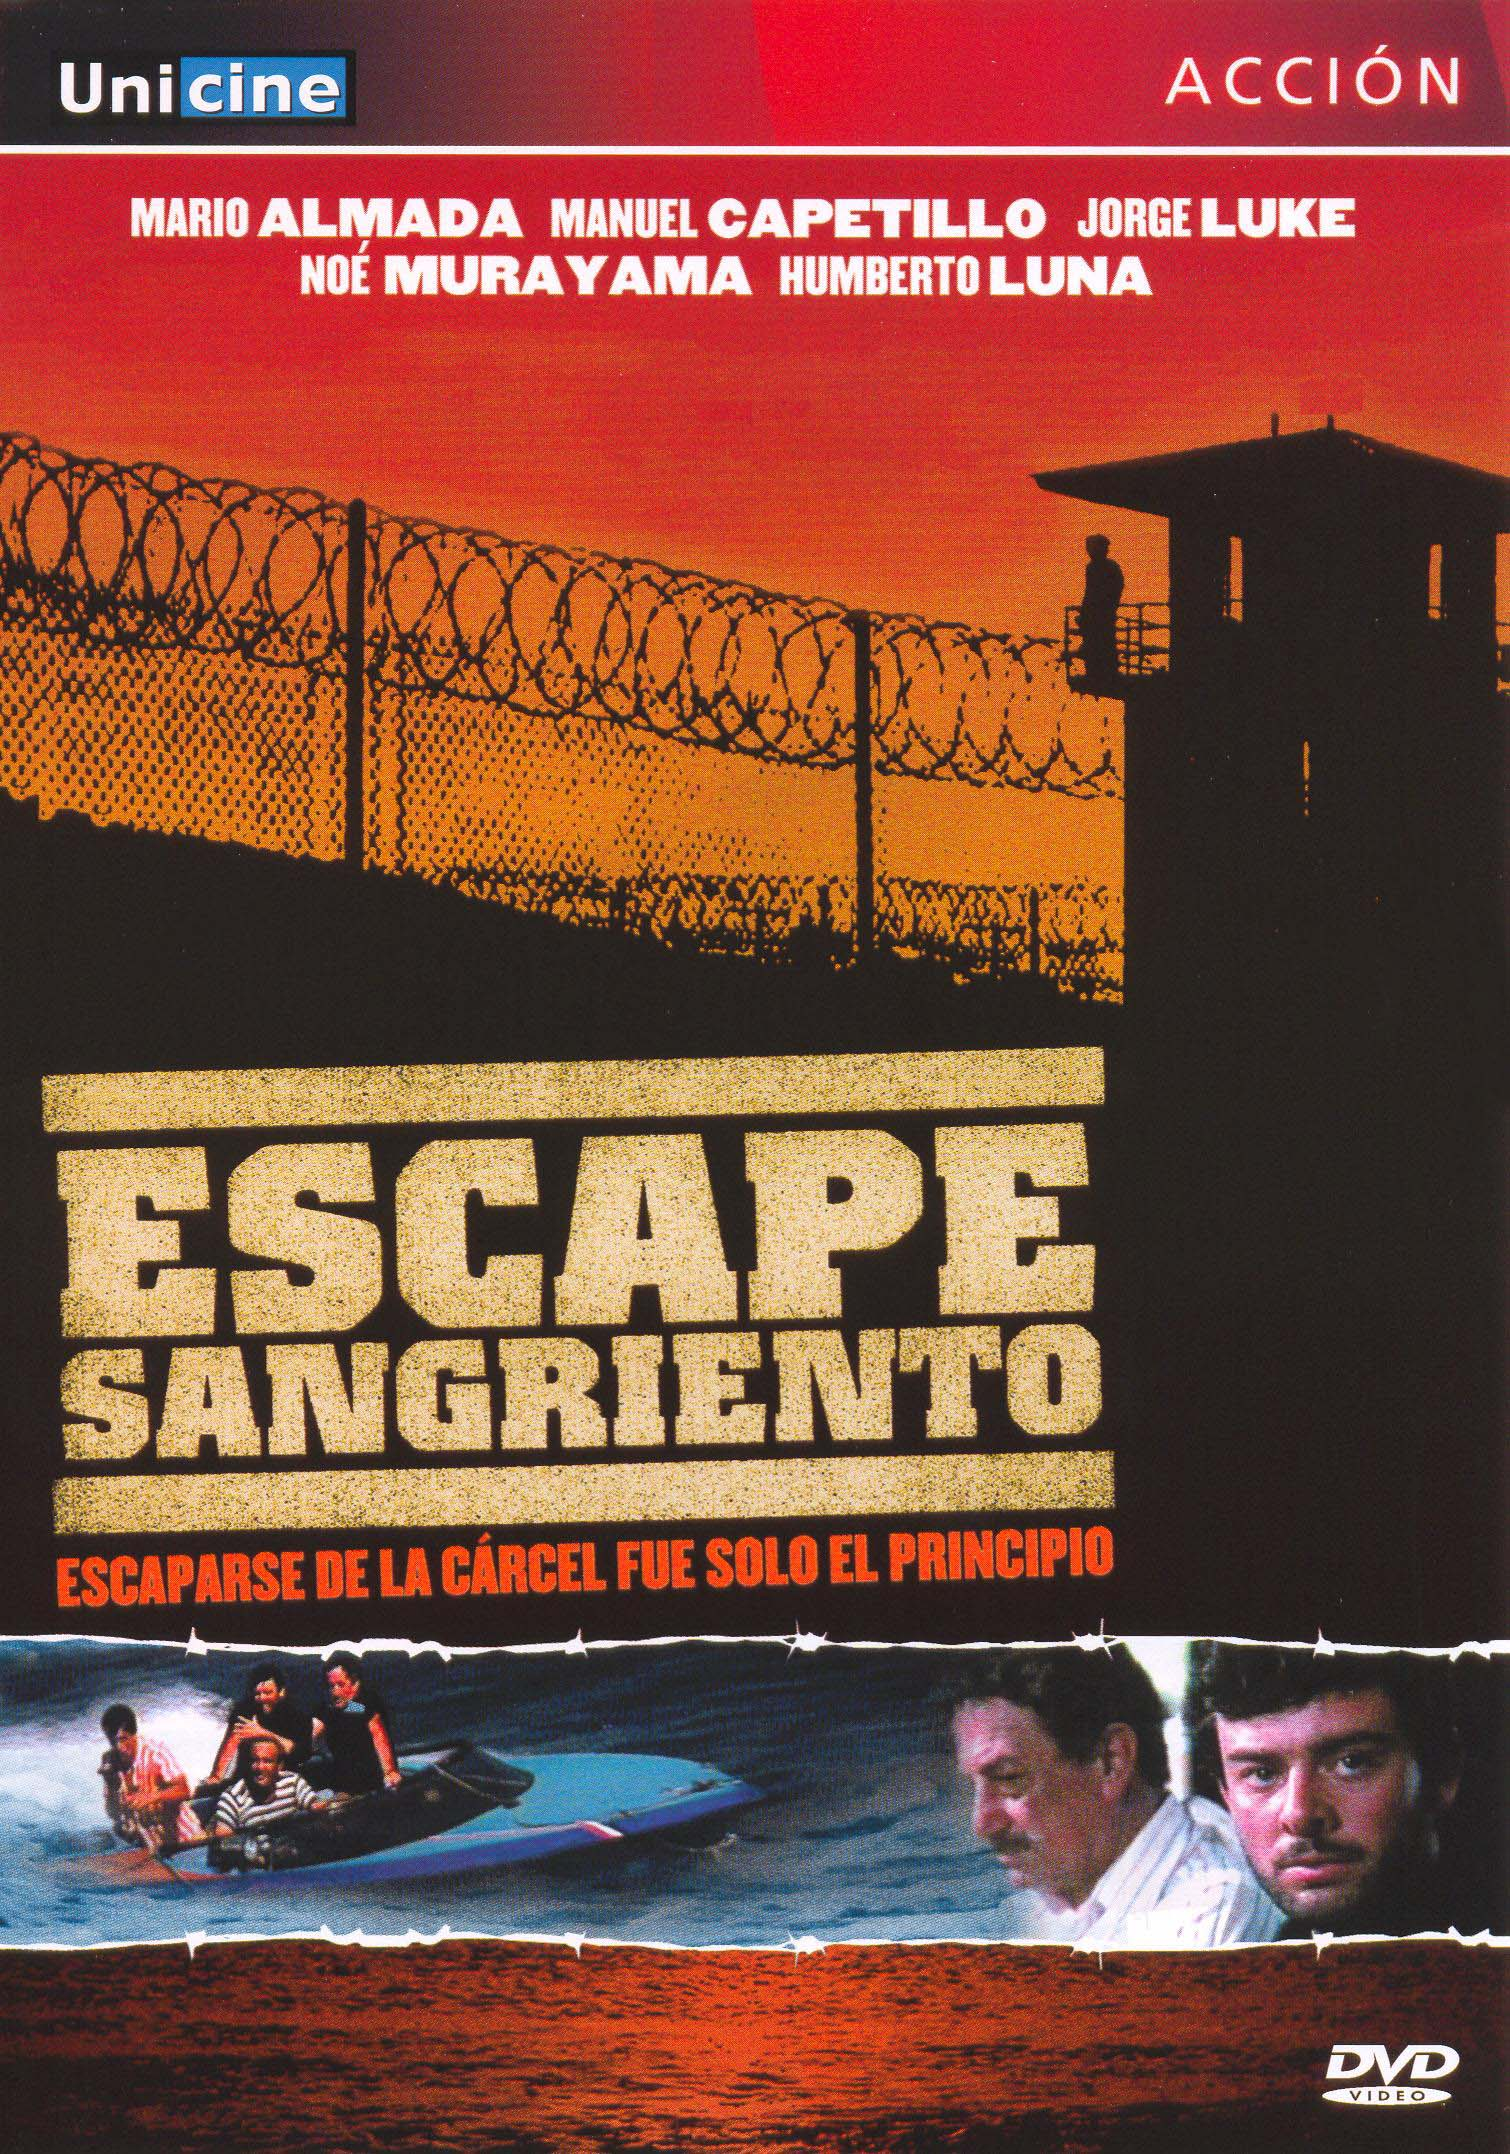 Escape Sangriento